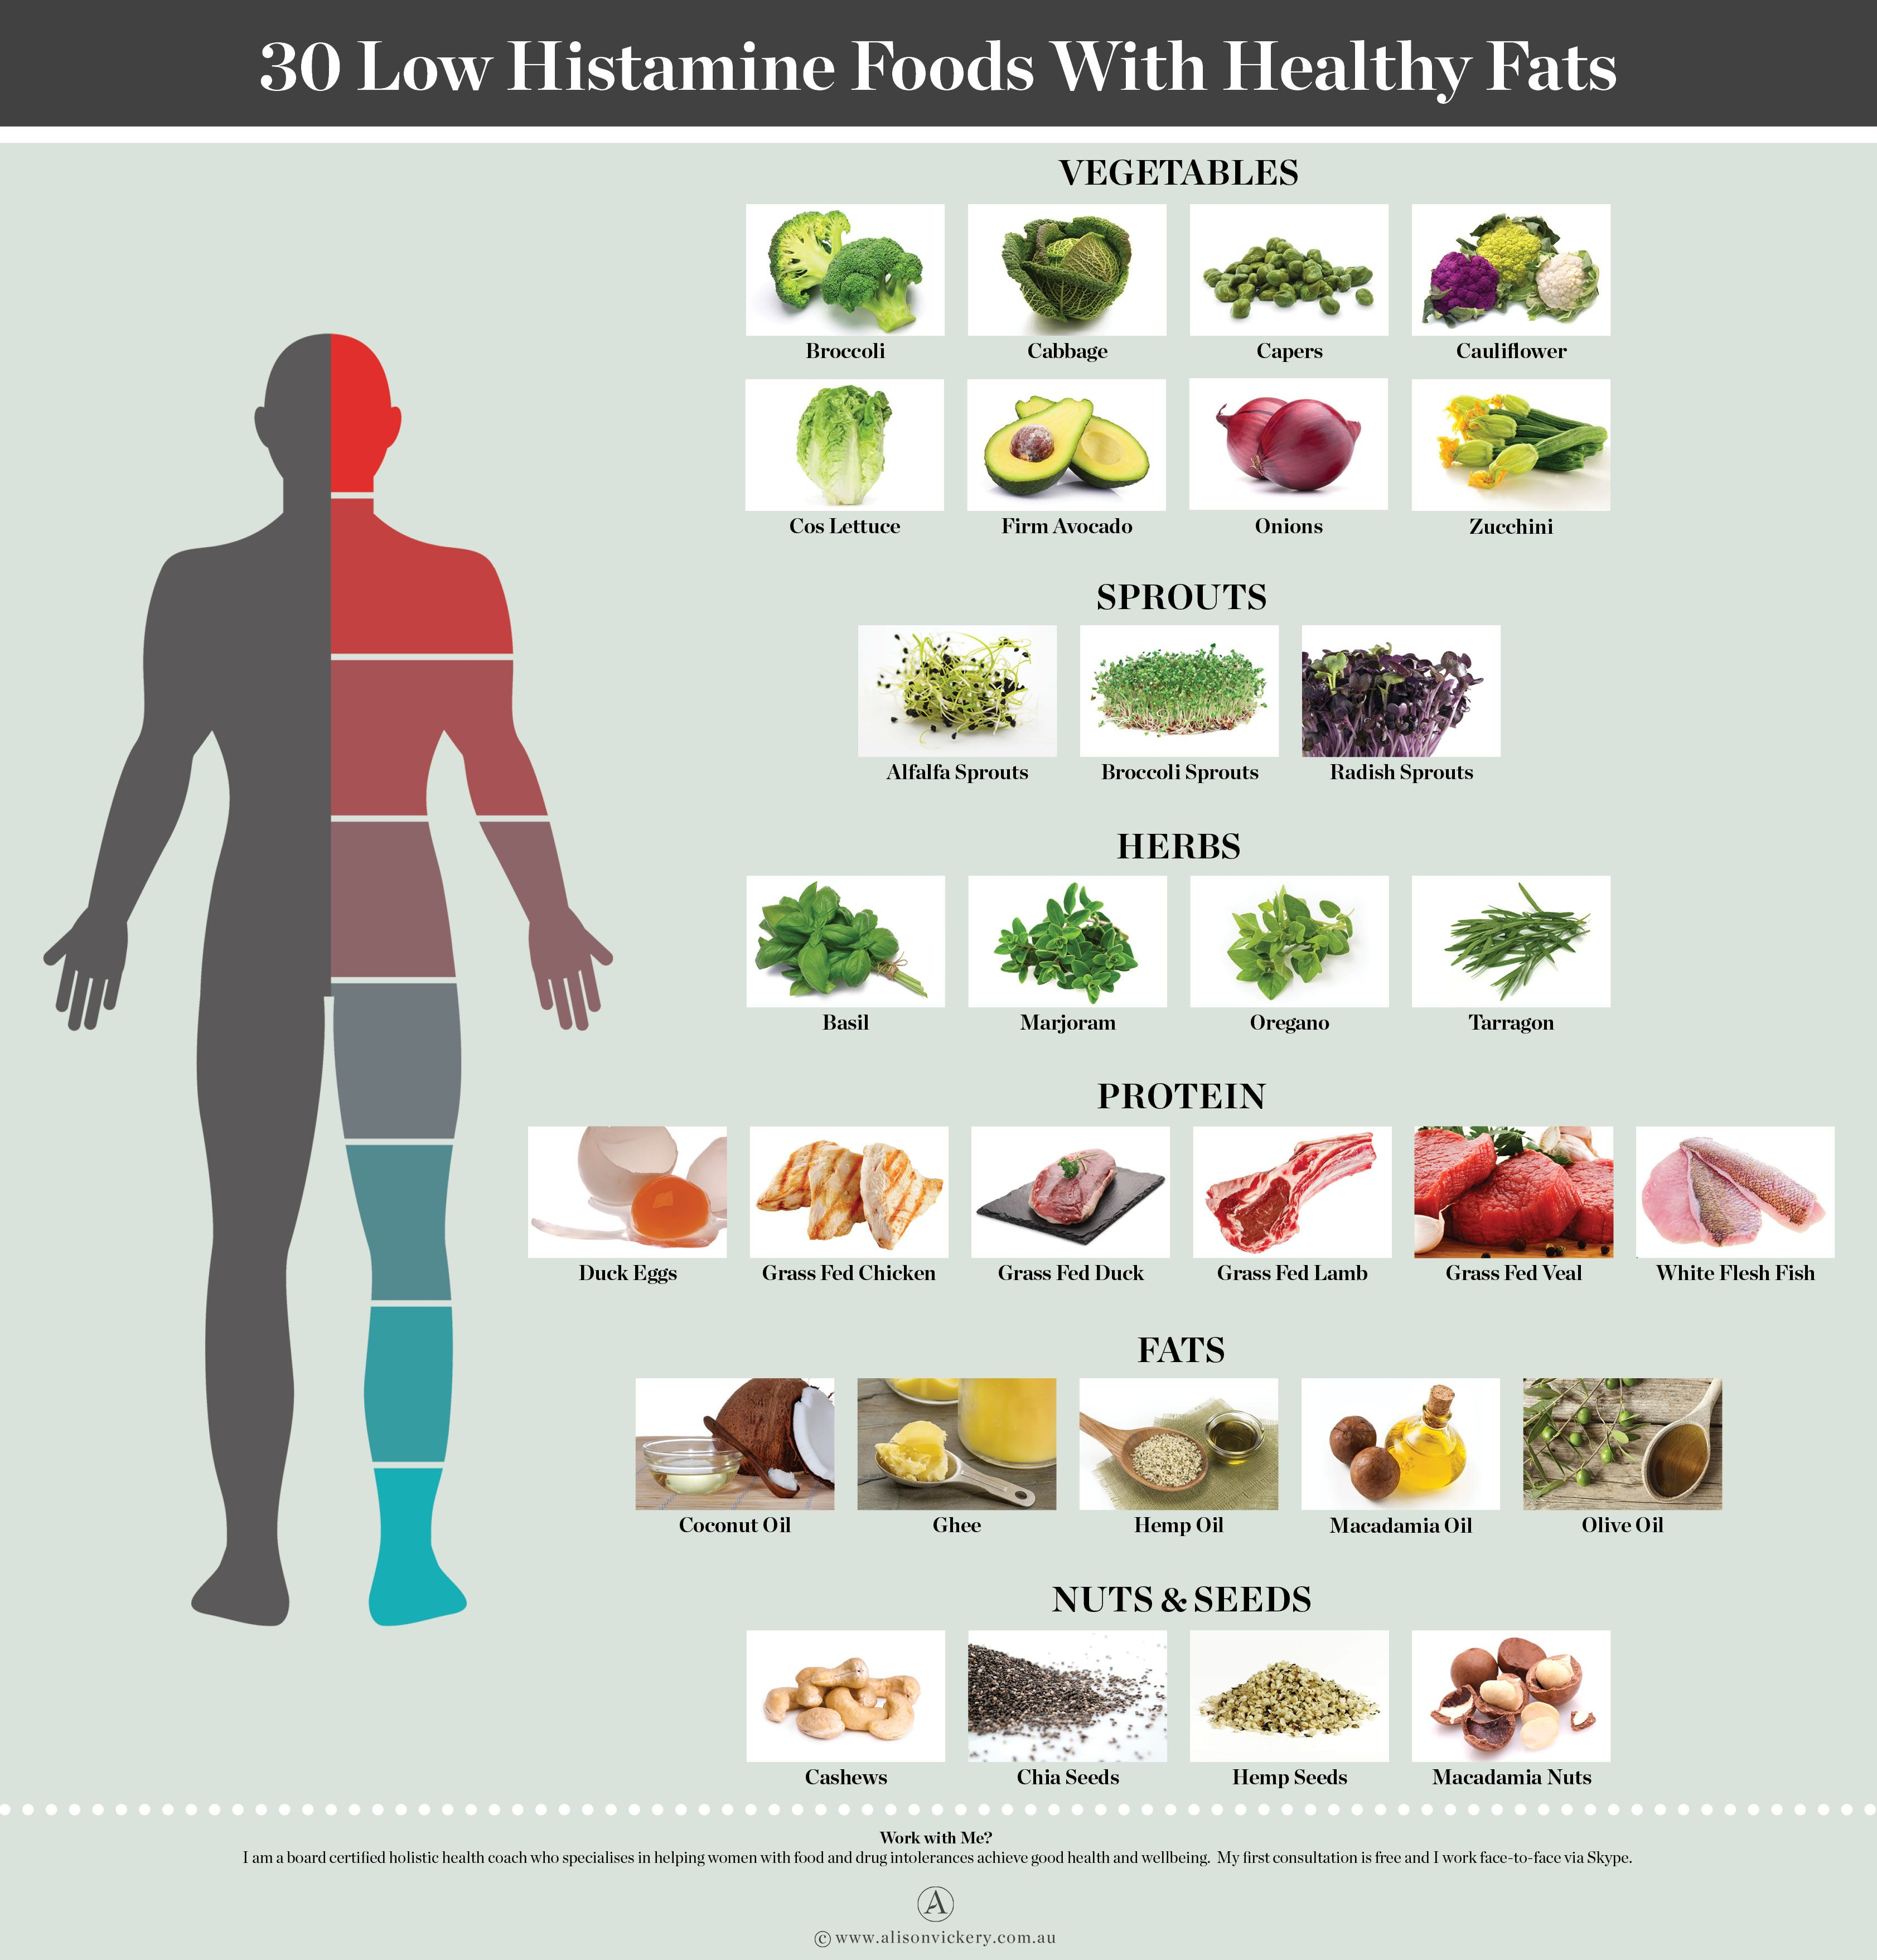 Low Histamine Foods With Healthy Fats